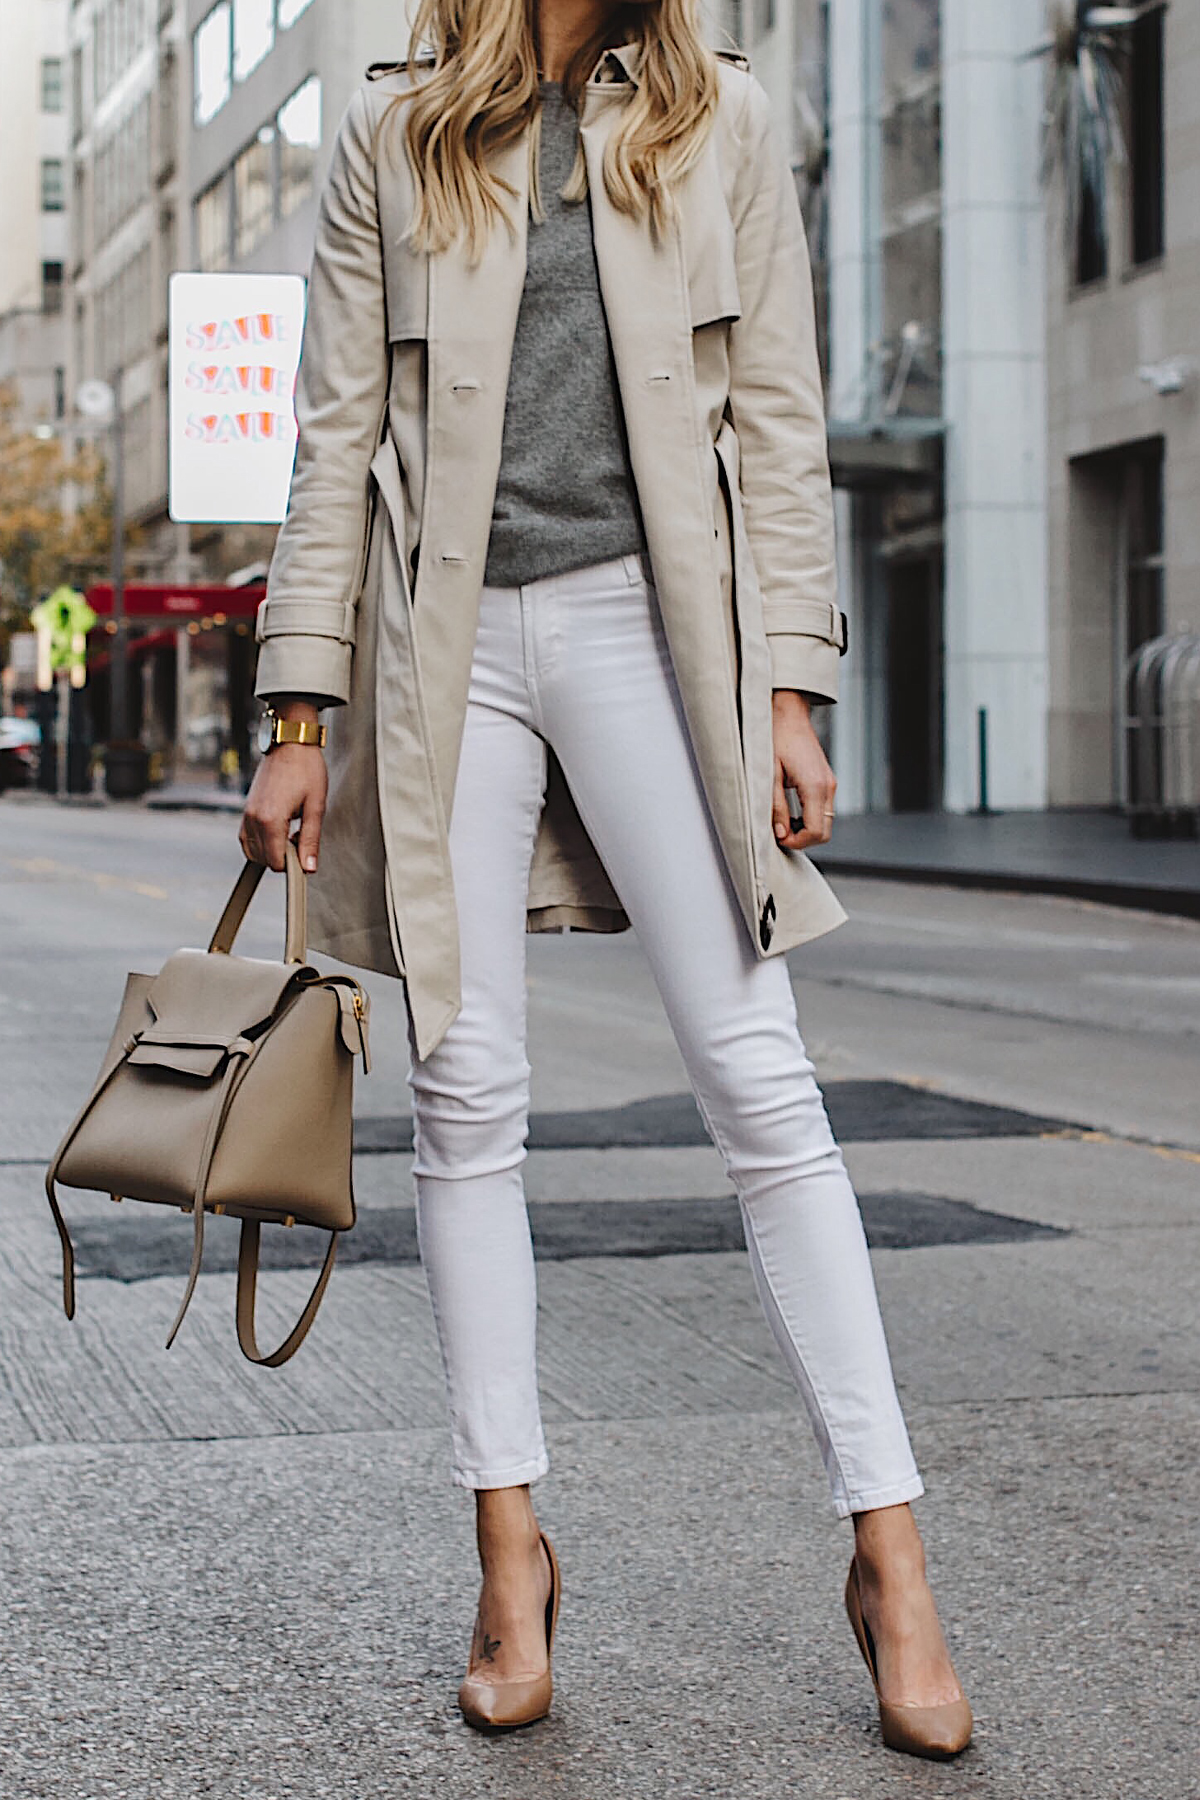 Club Monaco Trench Coat Grey Sweater White Skinny Jeans Celine Belt Bag Nude Pumps Fashion Jackson Dallas Blogger Fashion Blogger Street Style